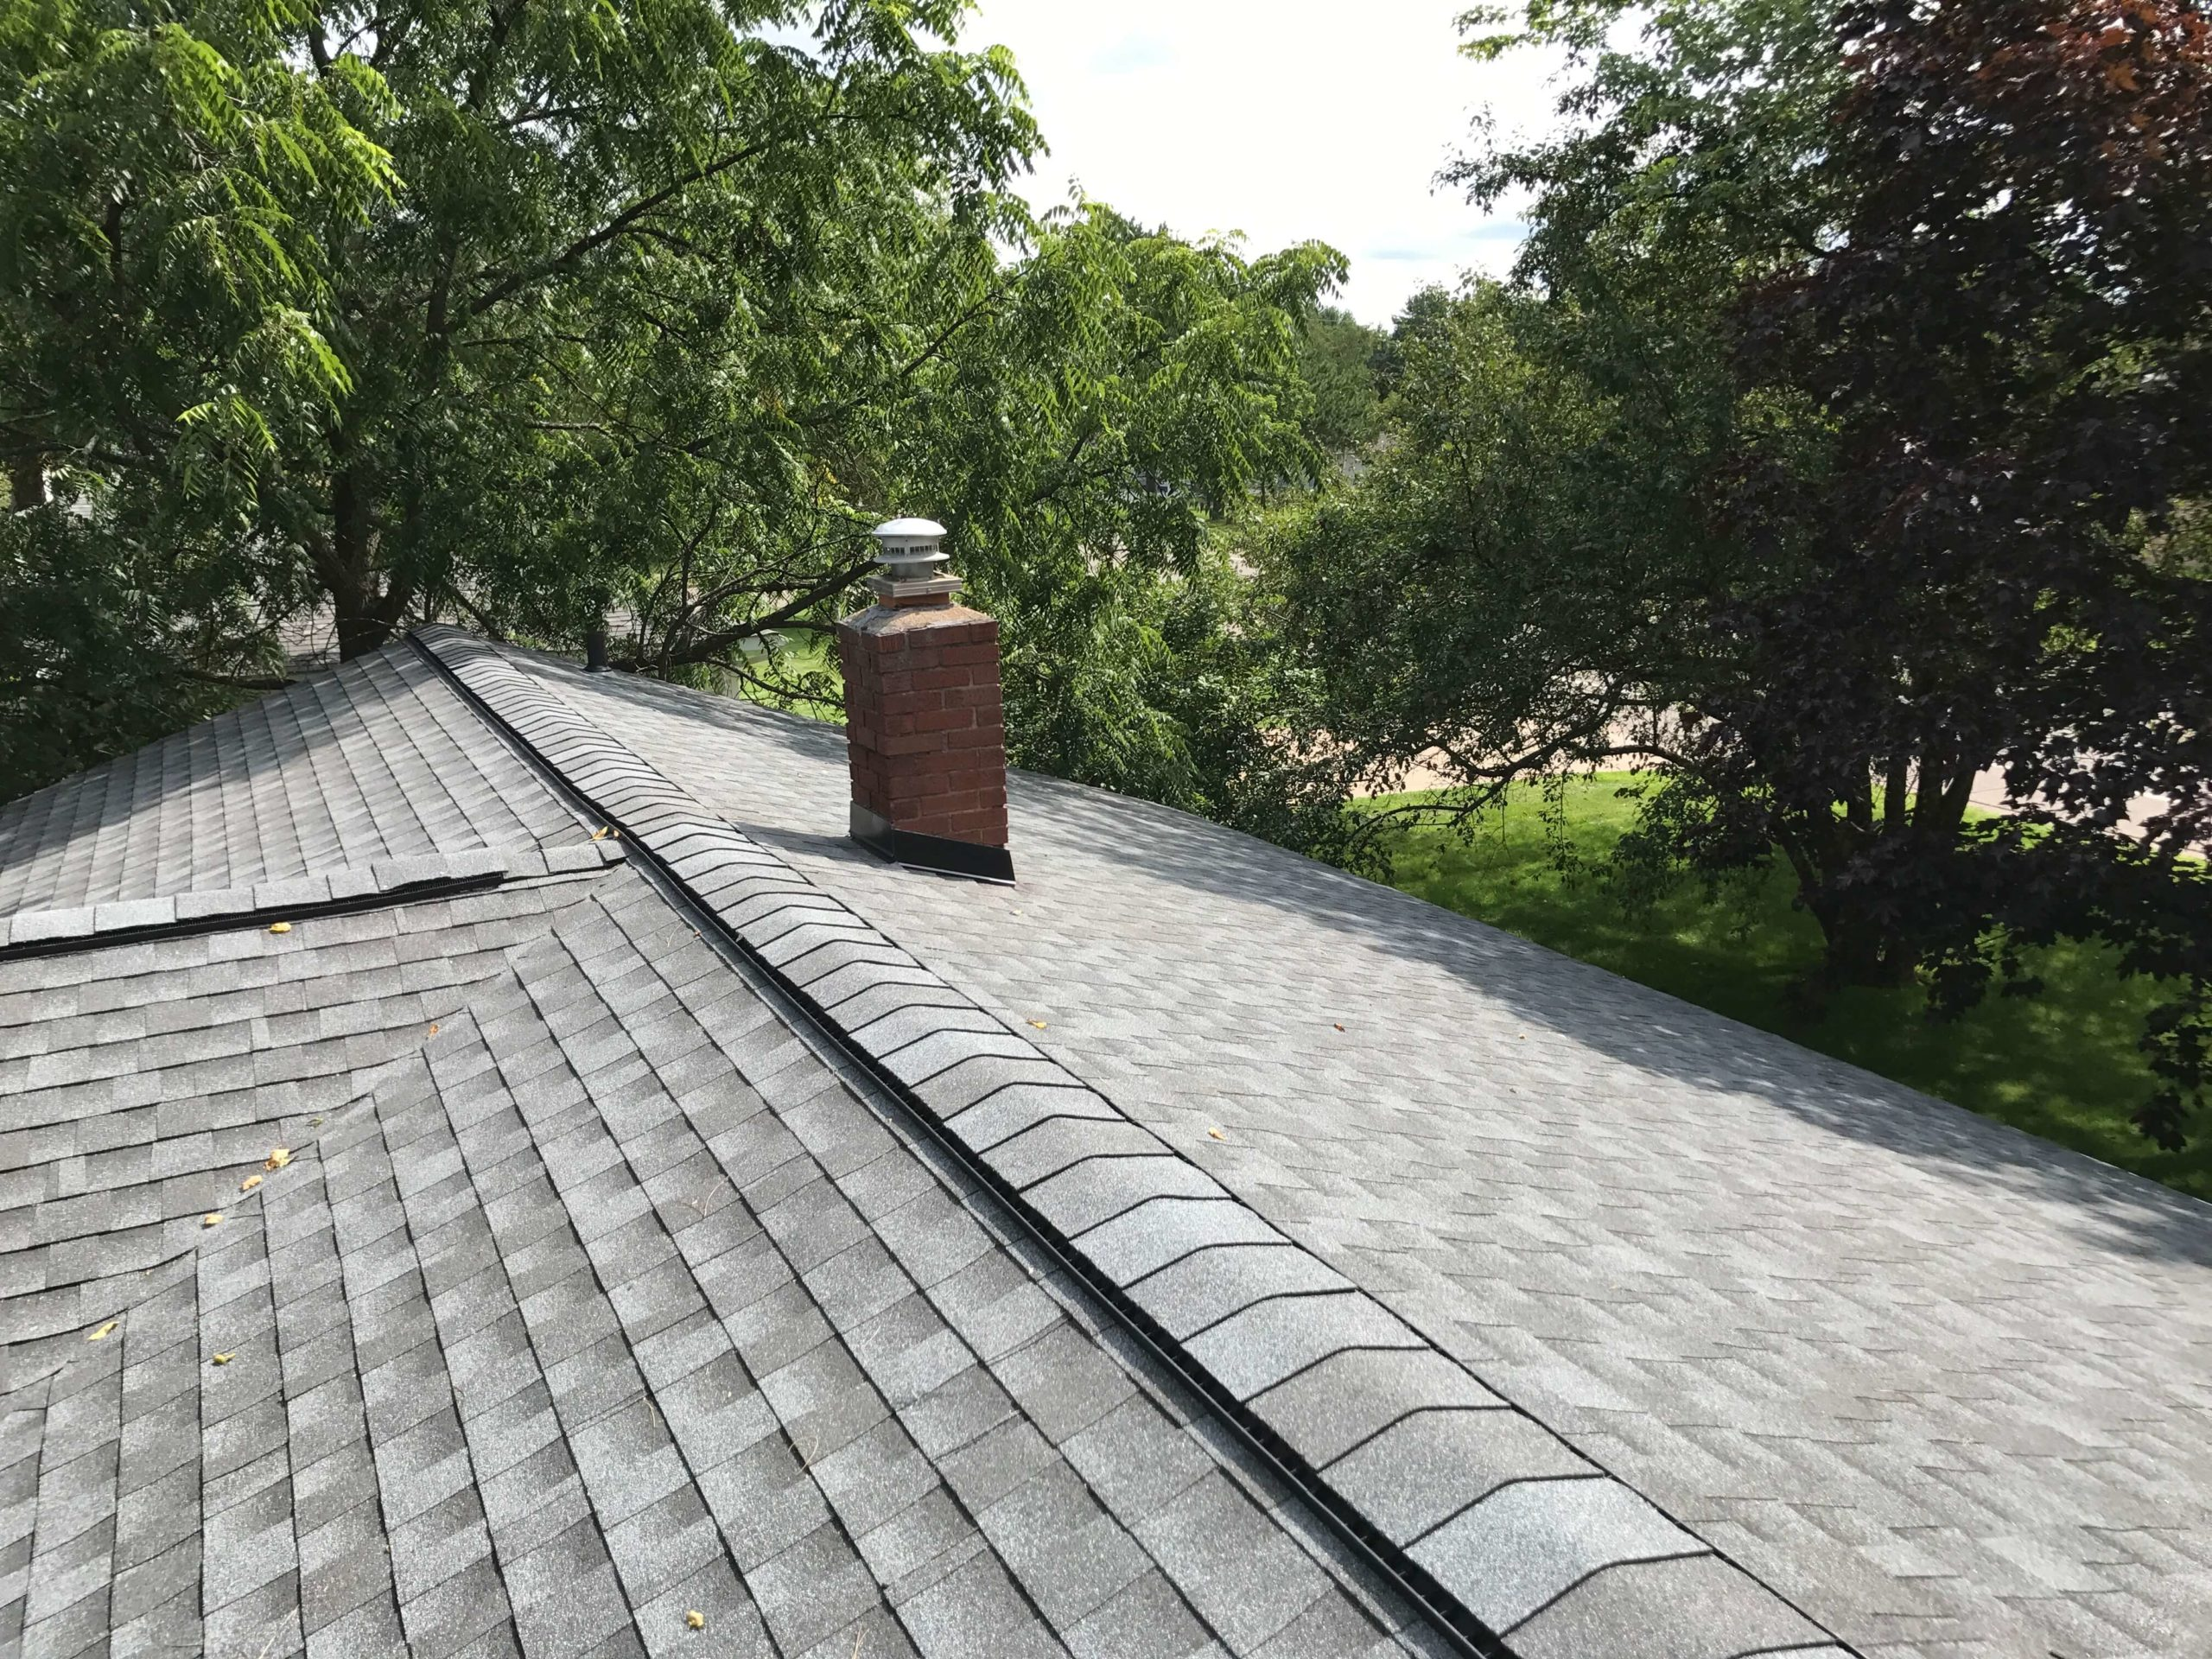 Gallery Empire Roofing